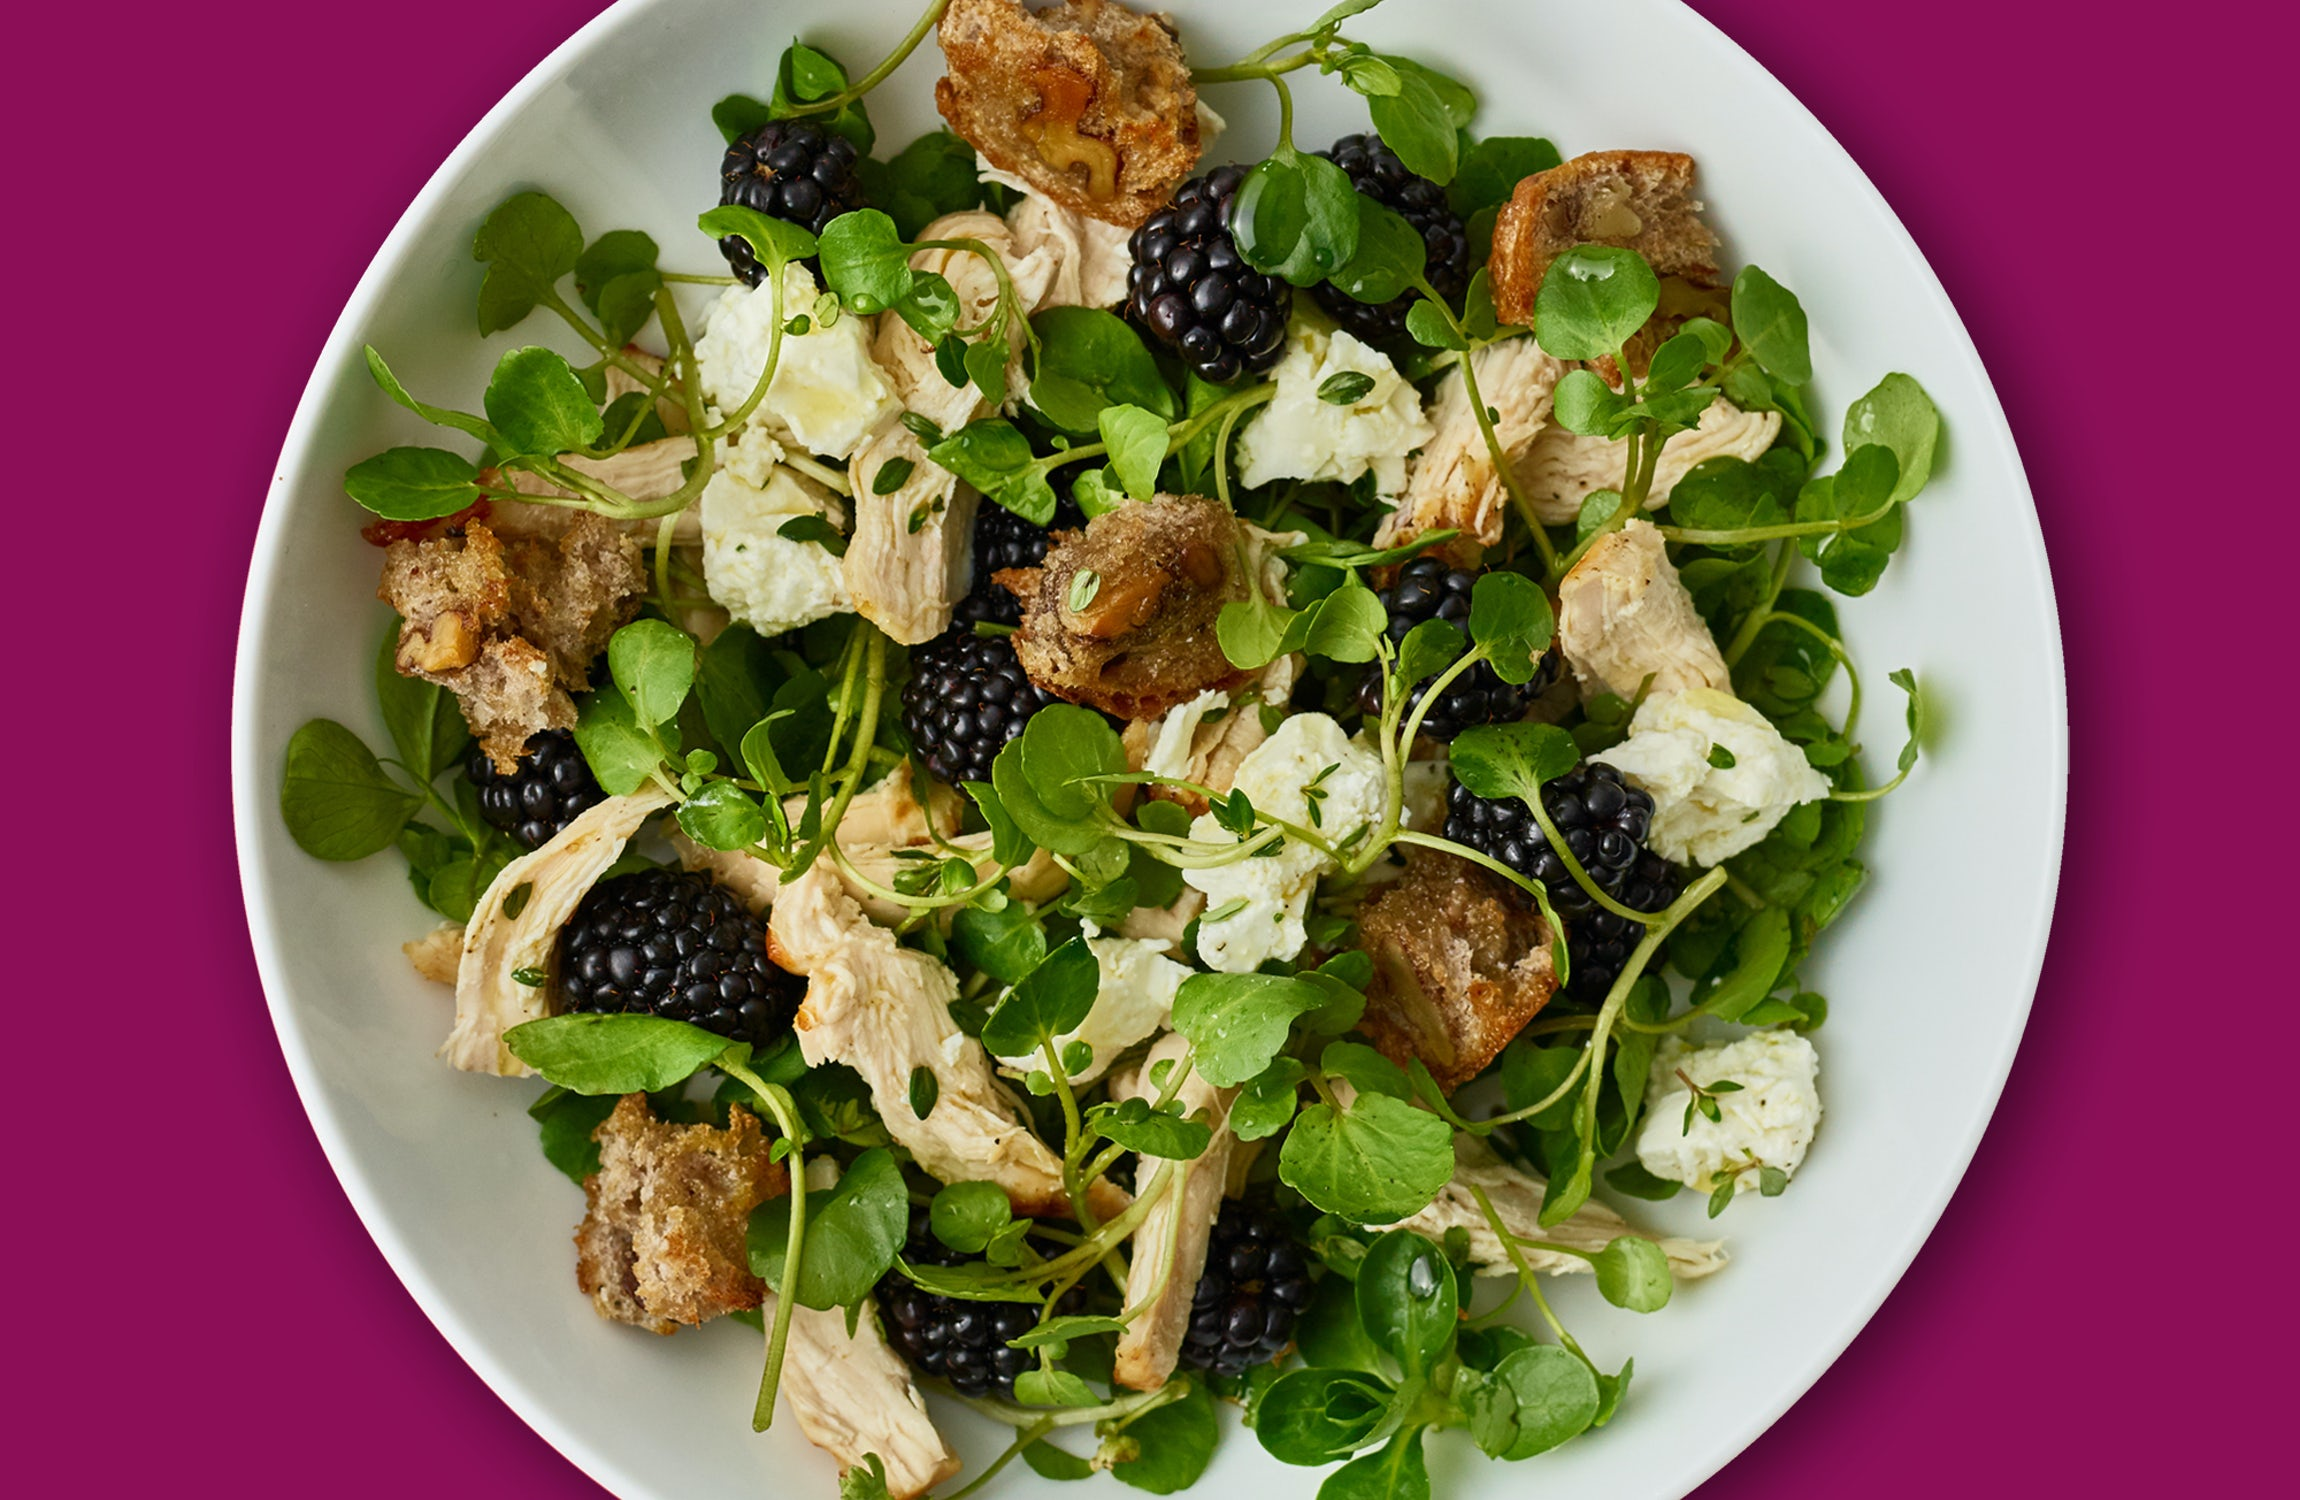 Oh my Goodness Blackberry & Chicken Salad